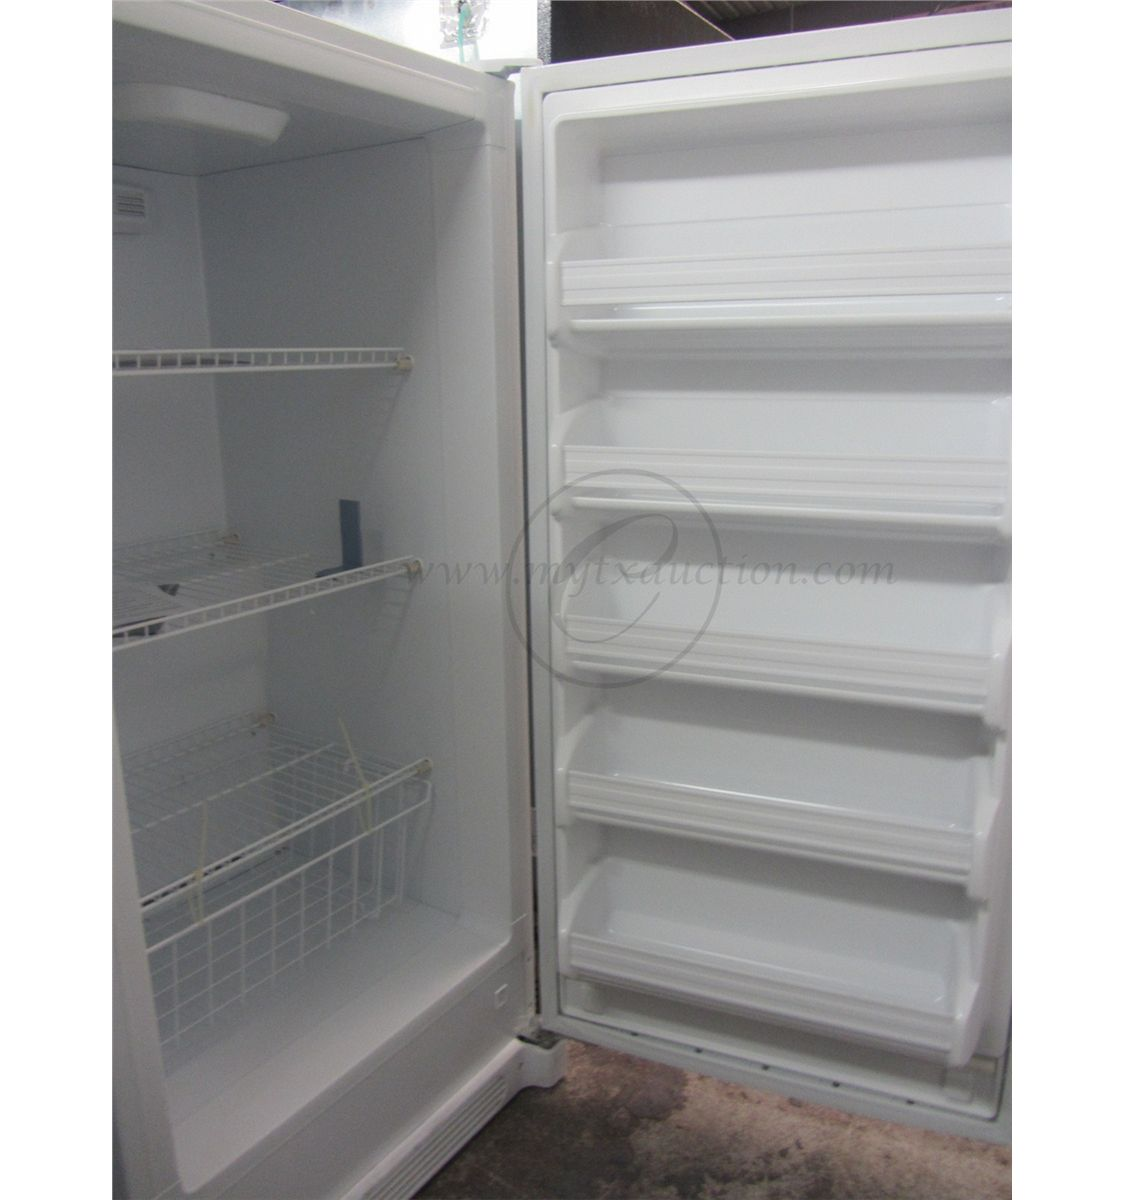 Vertical Freezers For Sale Frigidaire 137 Cubic Foot Upright Freezer Scratch And Dent See